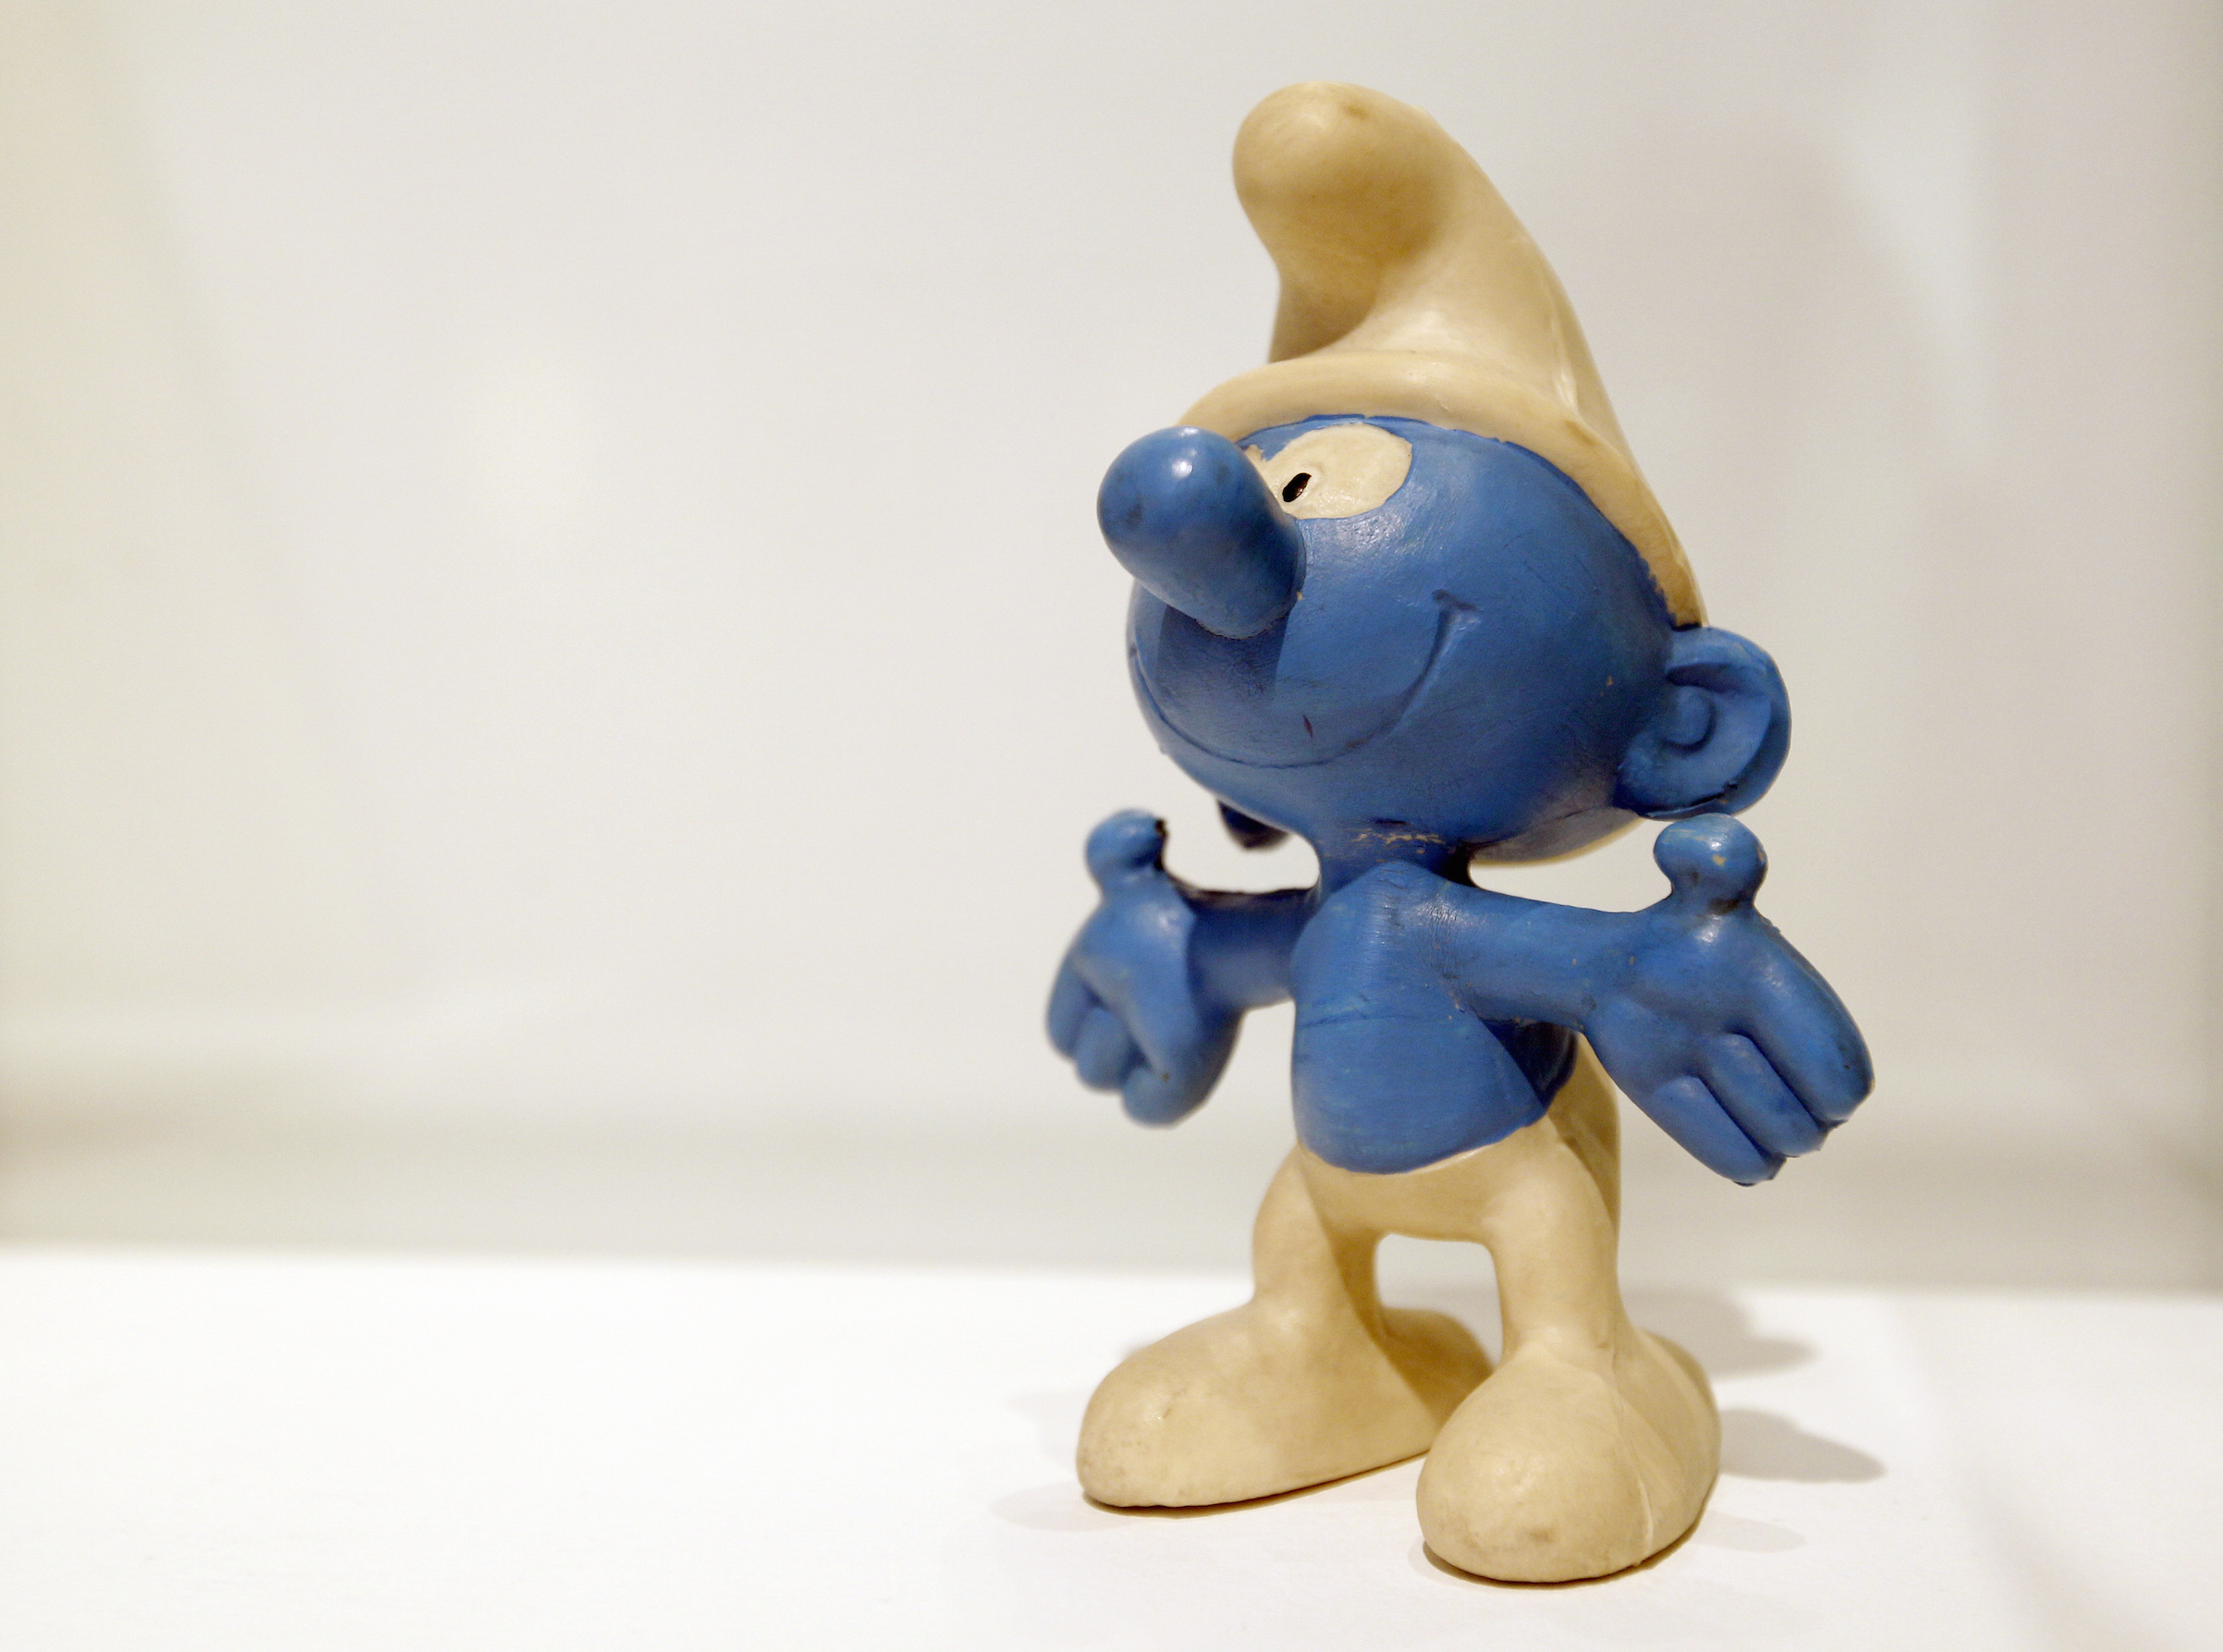 A Smurf (Schtroumpf in French) is displayed during an exhibition entitled  Pierre Culliford, PEYO, the life and and work of a master story-teller  at the Artcurial's saleshouse on July 7, 2011, in Paris. The retrospective showcased over 150 original works, archive material and personal items from Peyo.